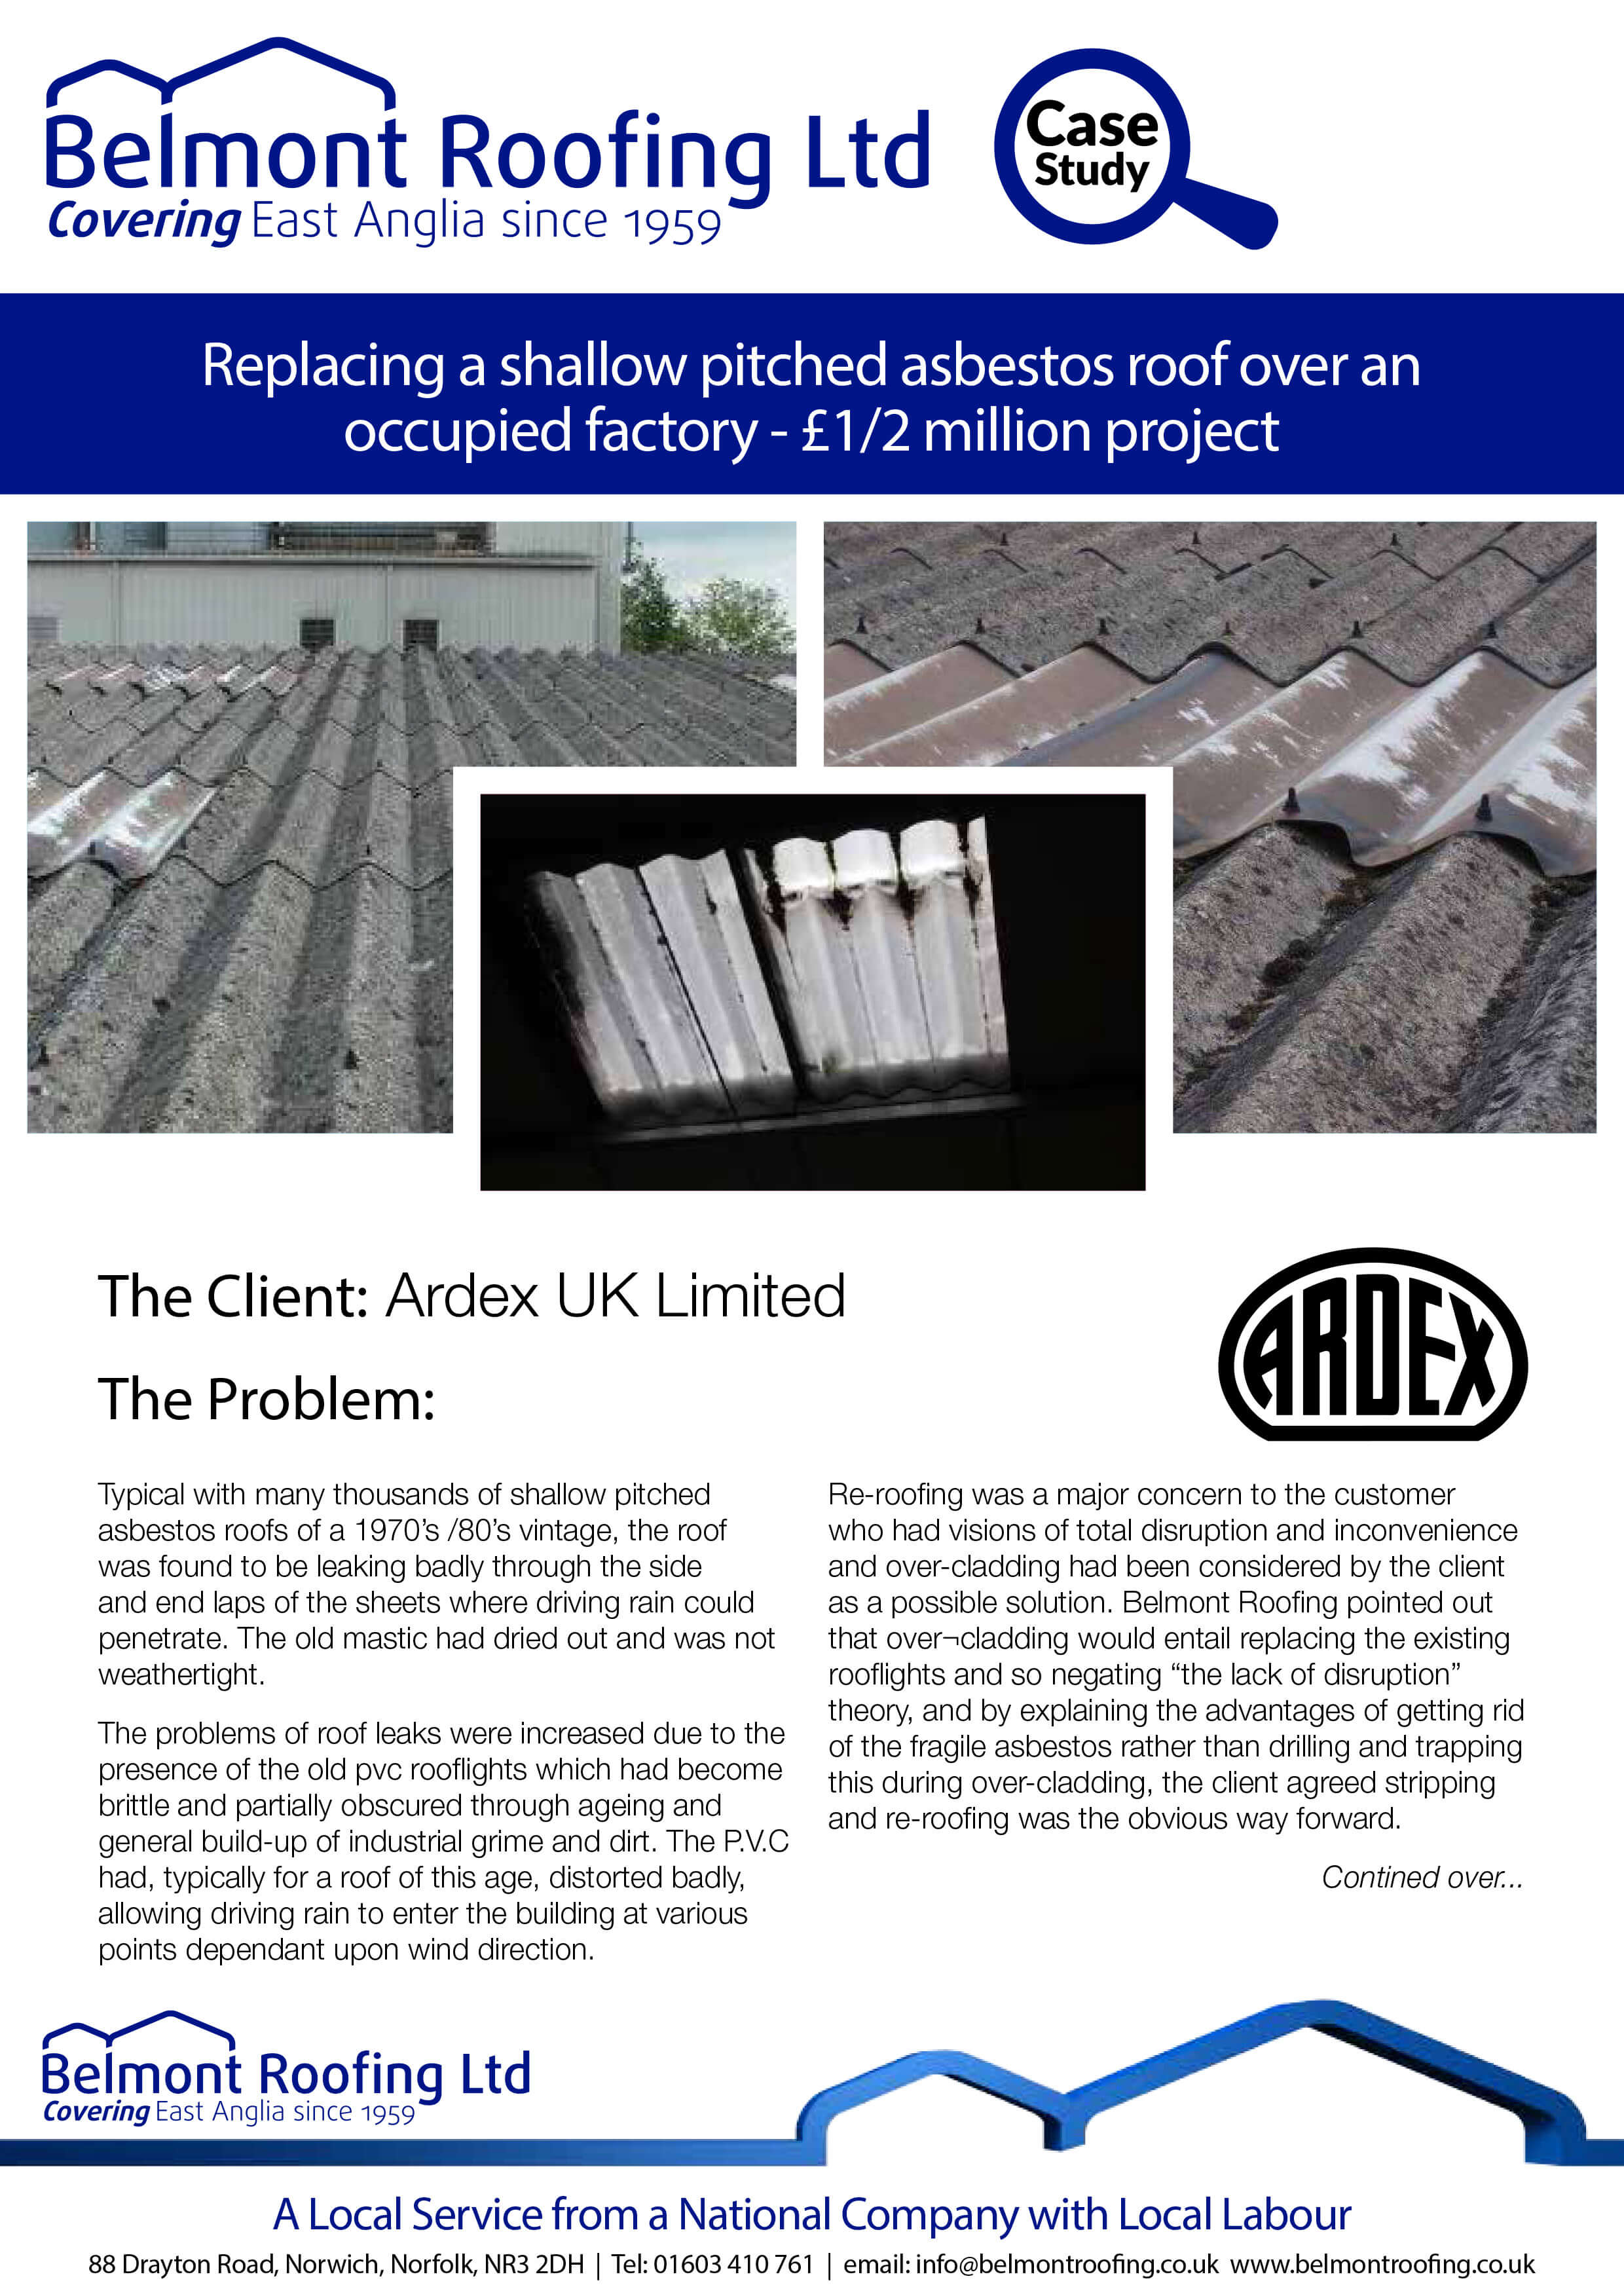 Asbestos Refurbishment Ardex v2 1